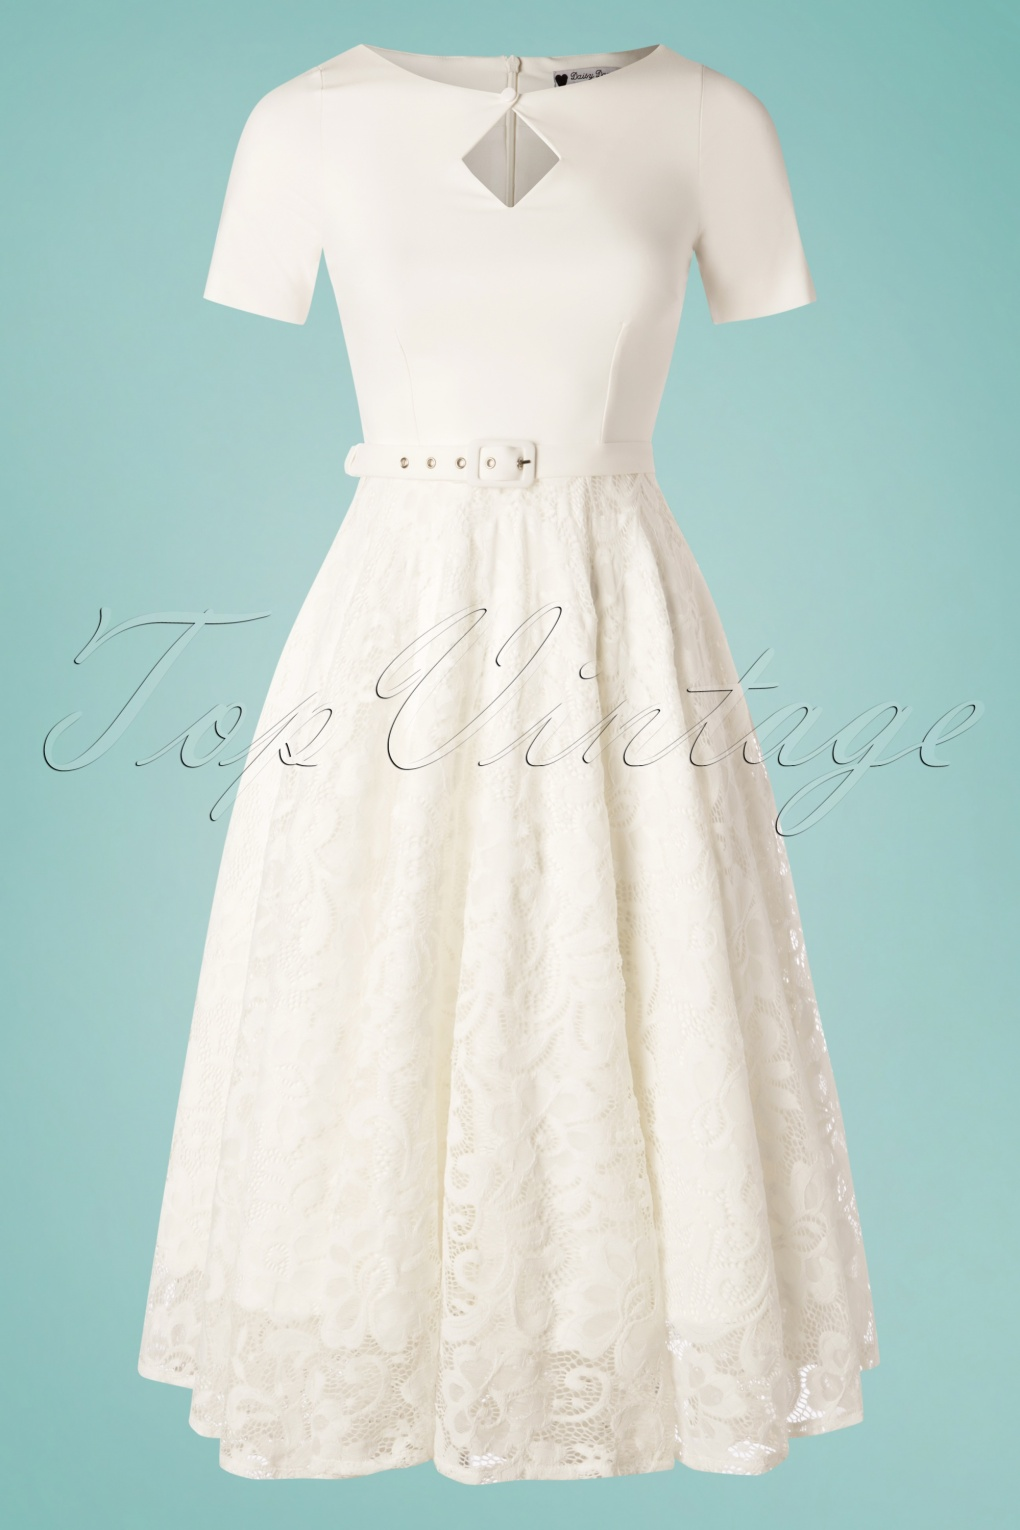 50s Wedding Dress, 1950s Style Wedding Dresses, Rockabilly Weddings 50s Dolly Lace Swing Dress in Ivory White �197.30 AT vintagedancer.com